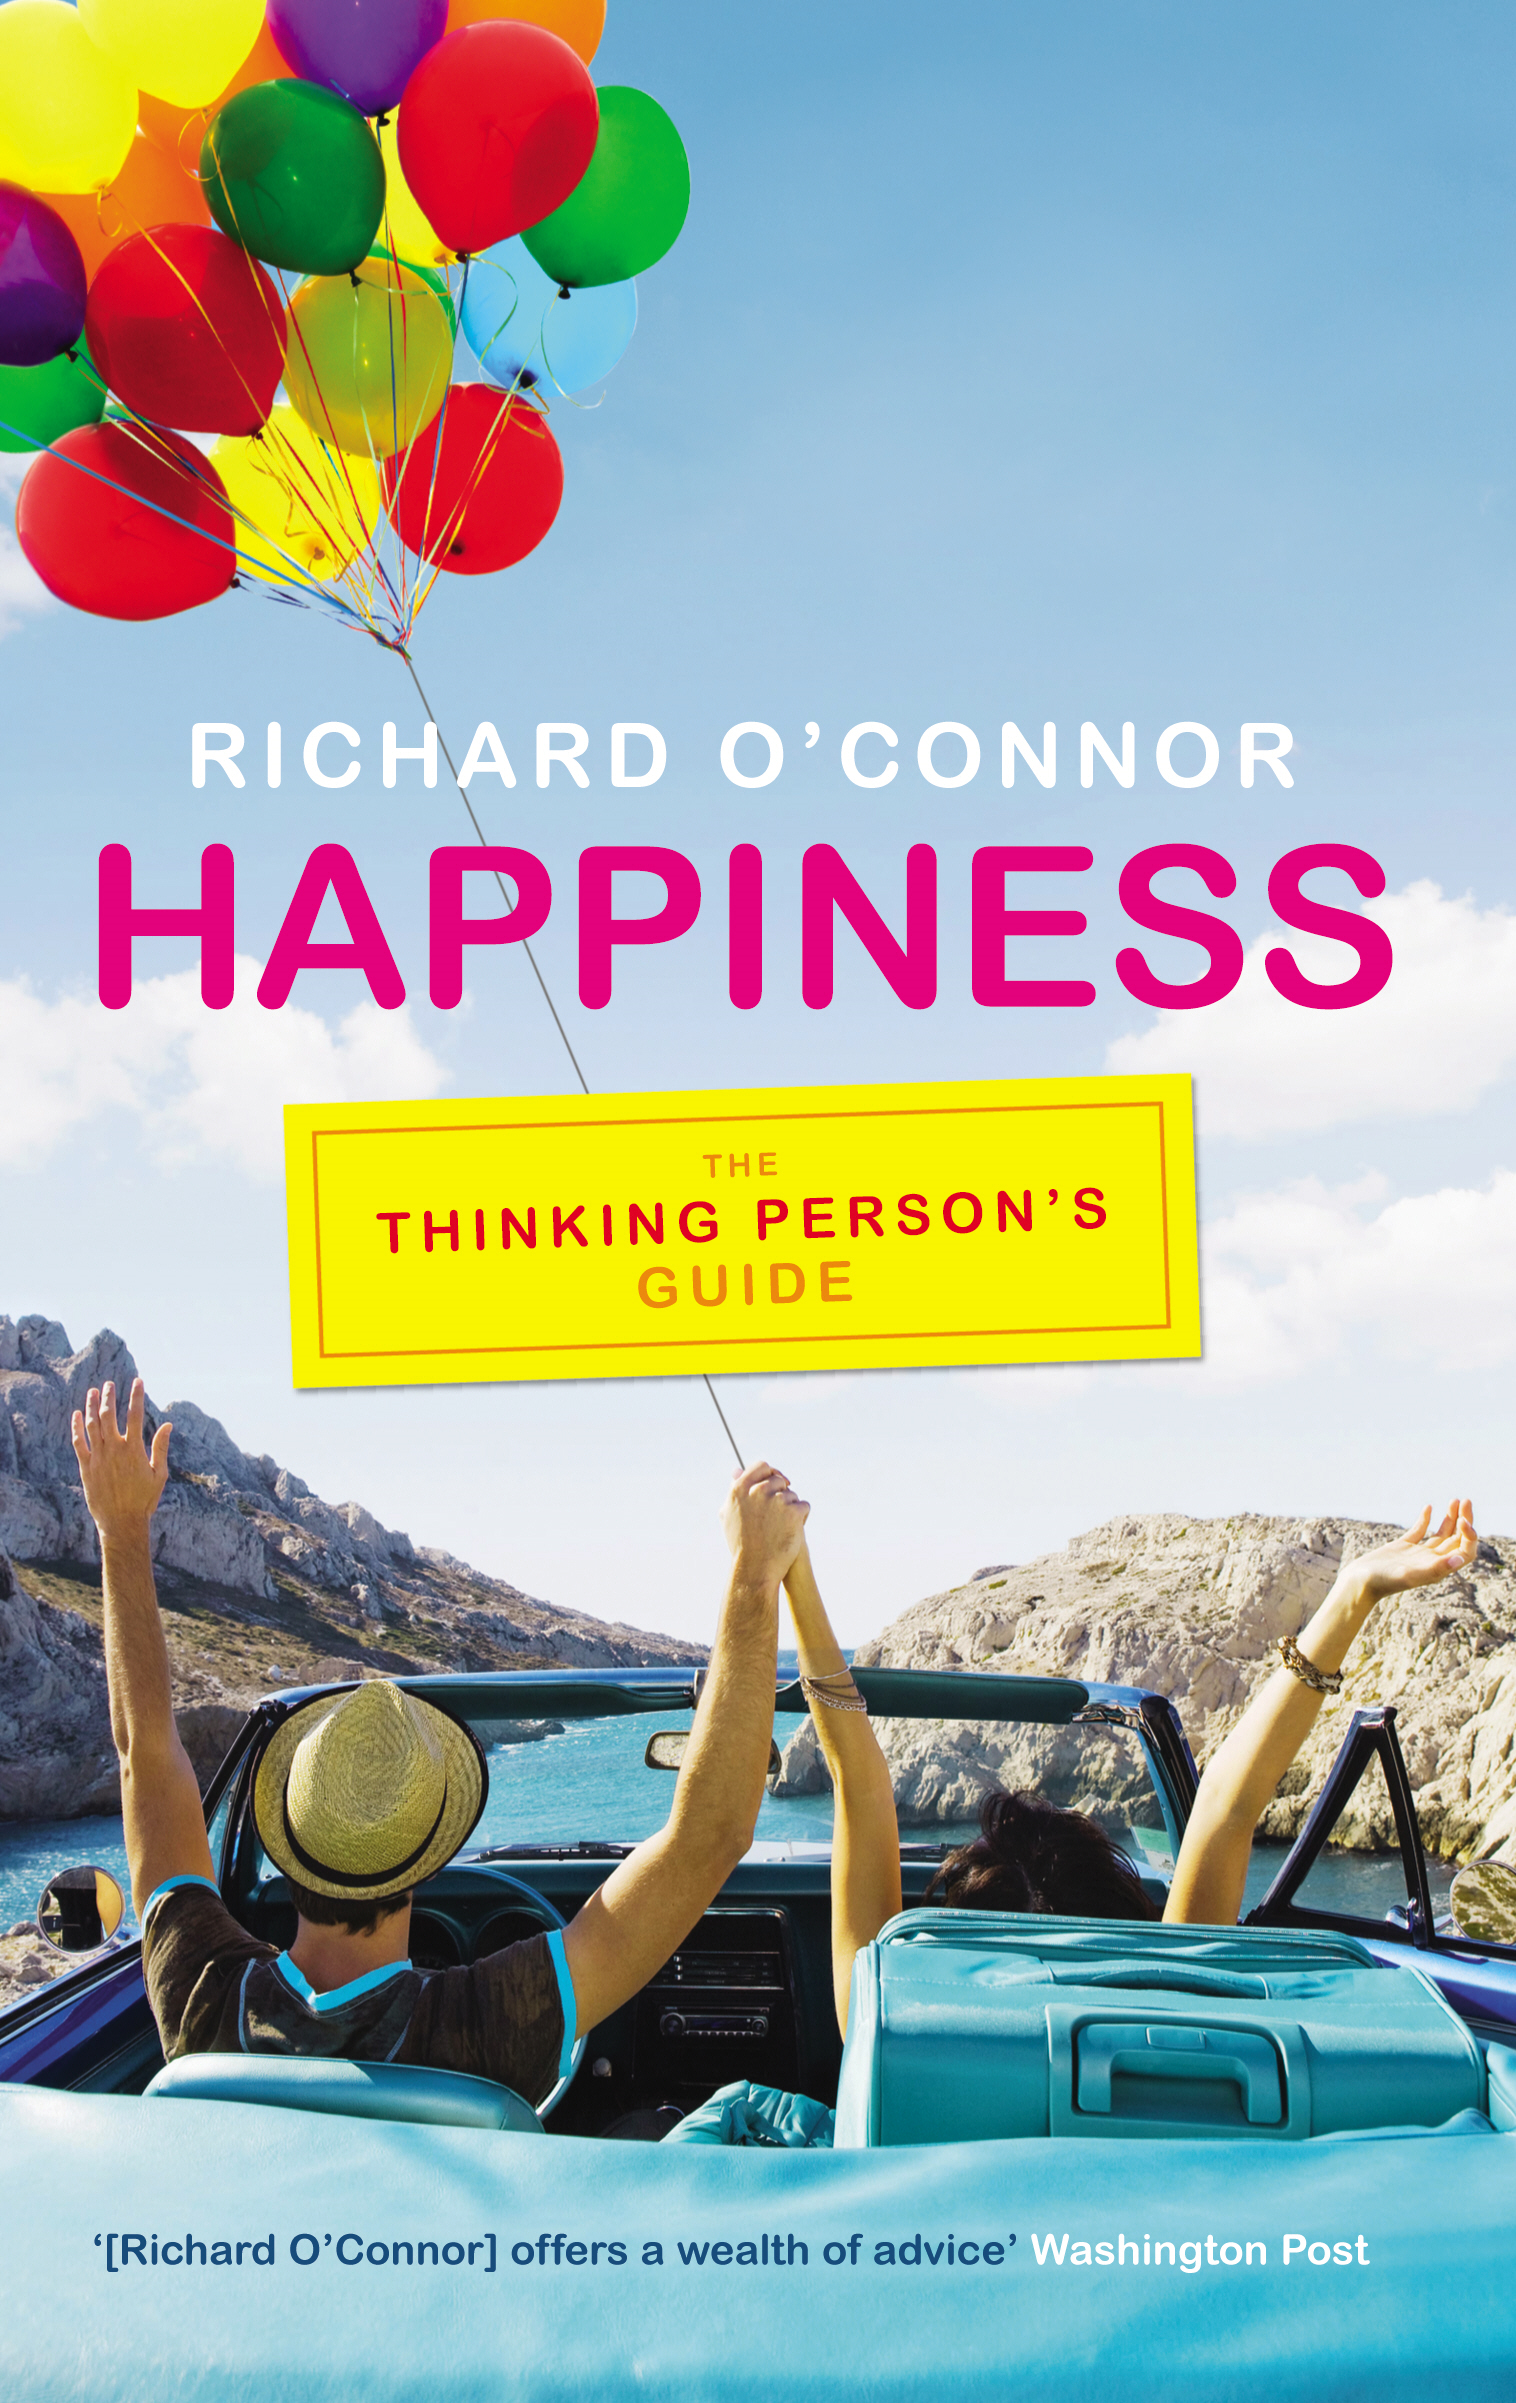 Happiness The Thinking Person's Guide